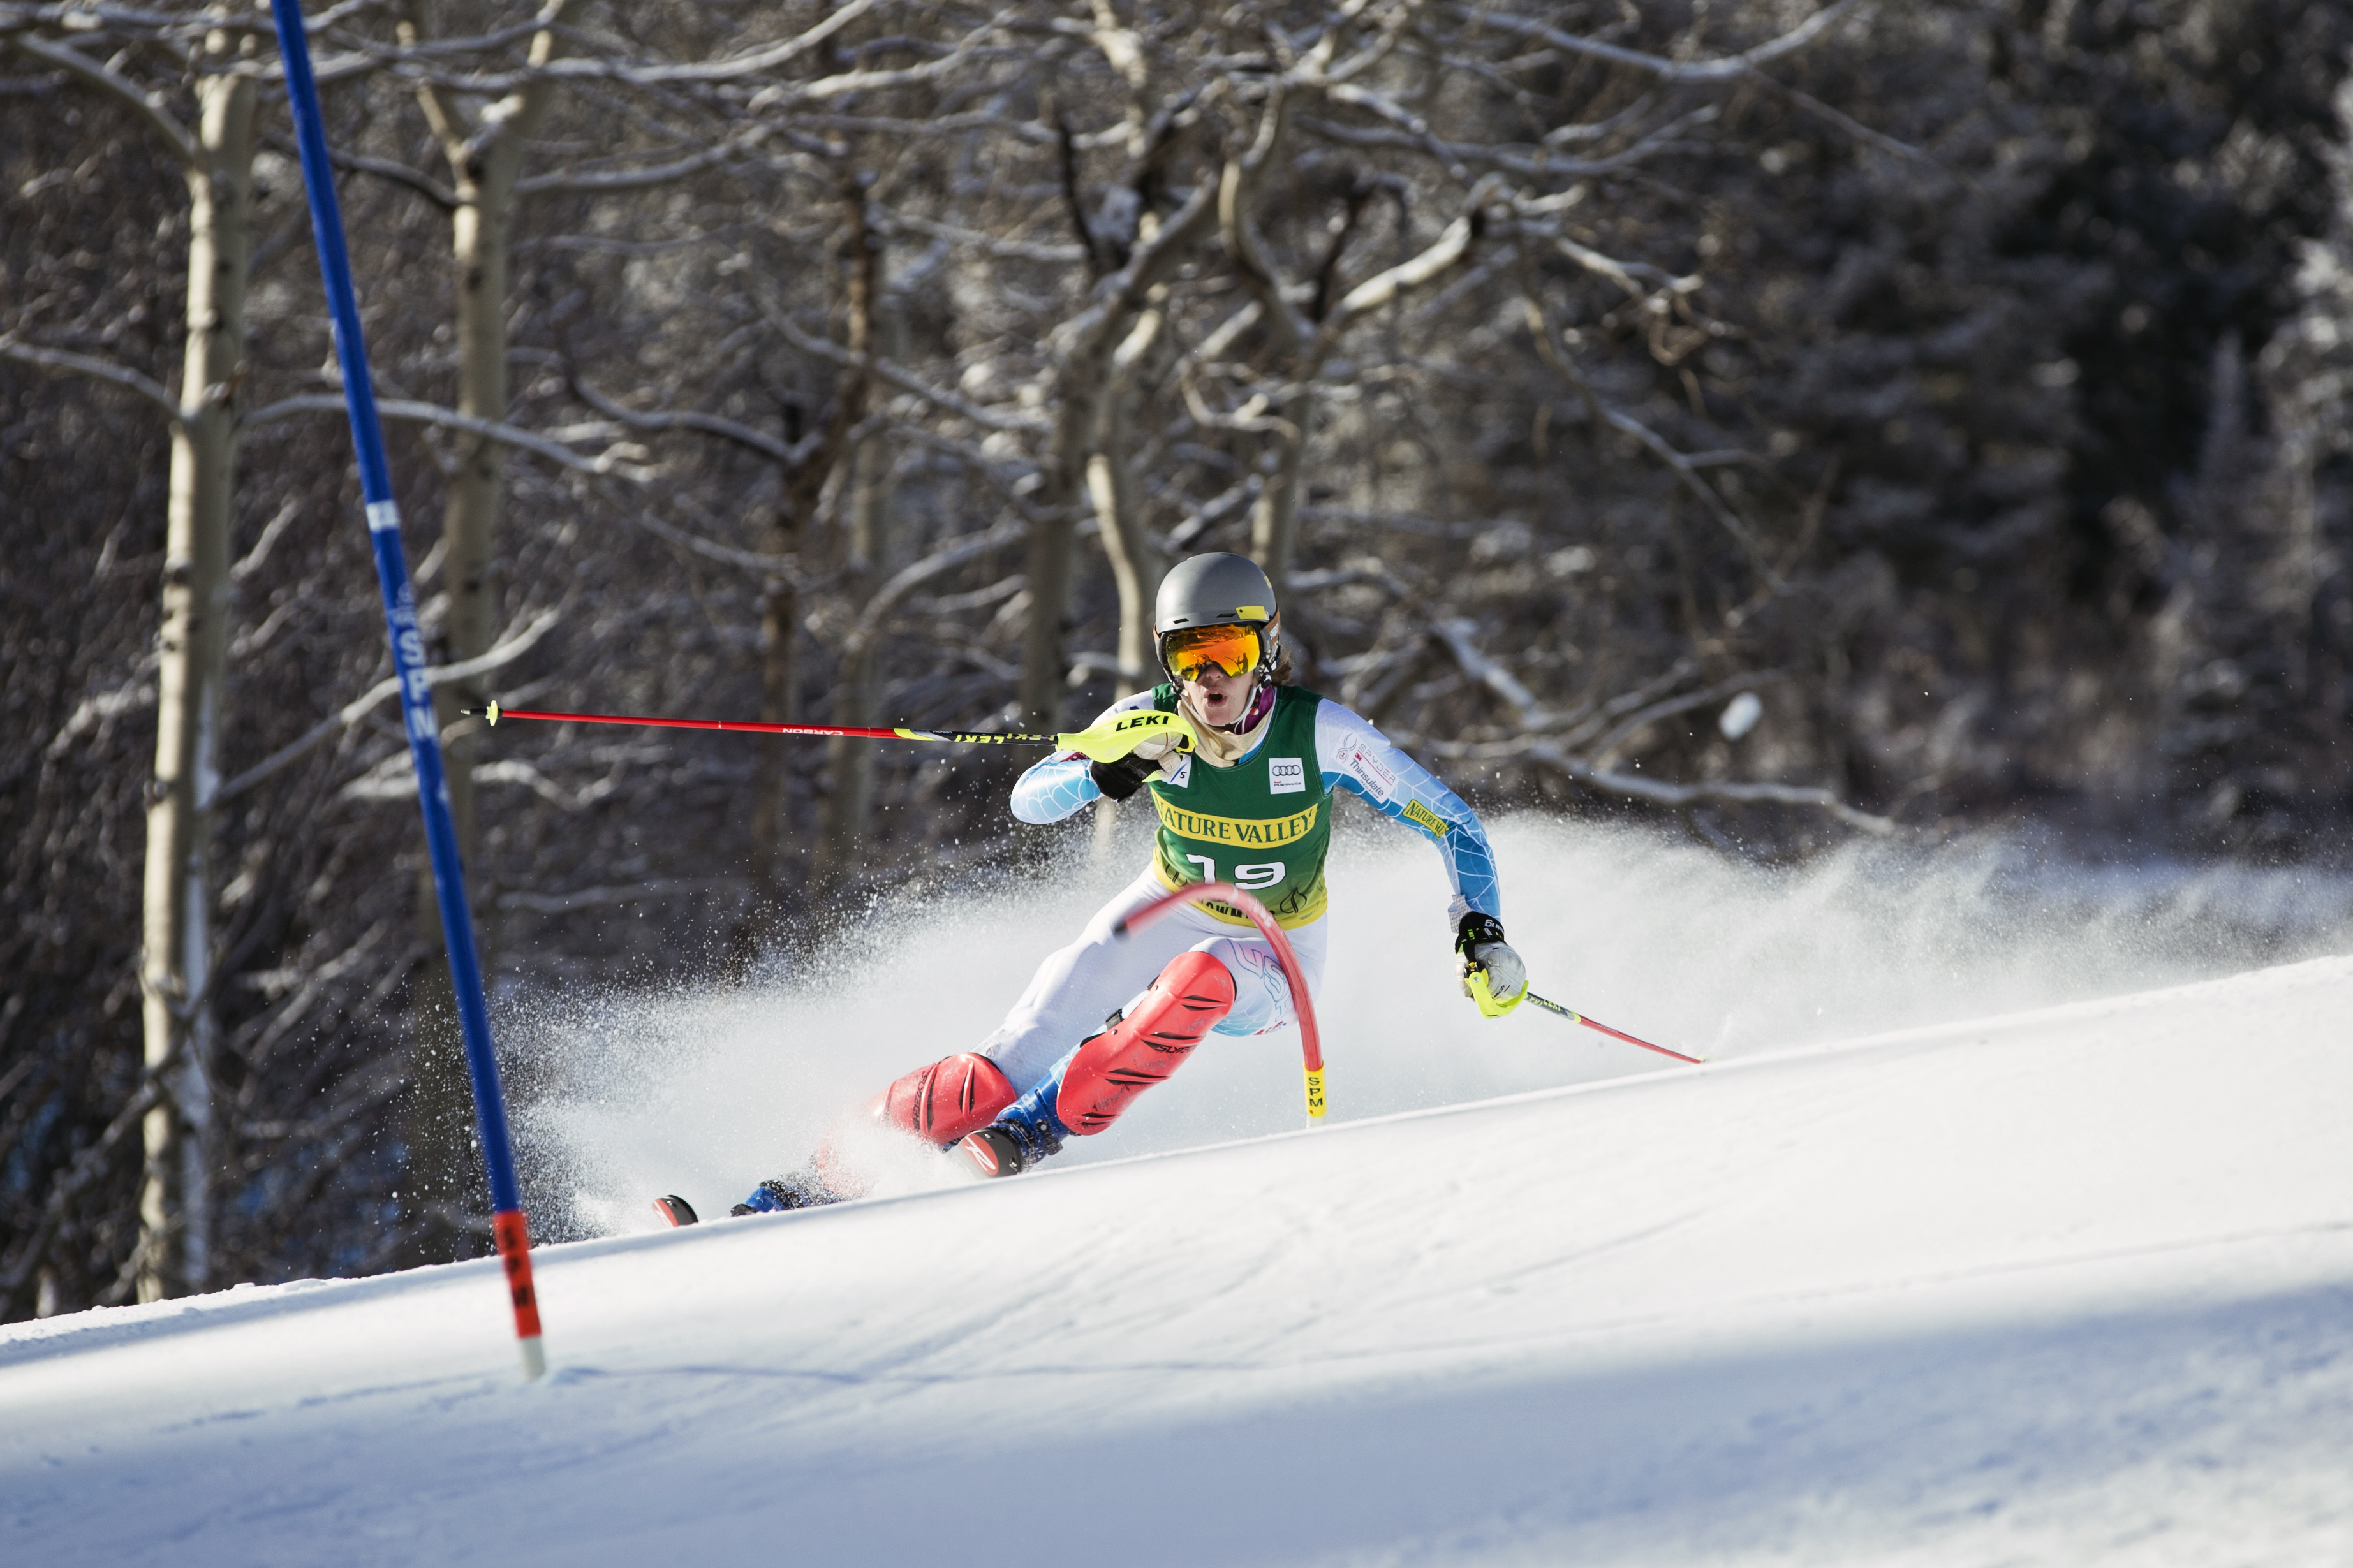 Look for Jackson Hole's Resi Stiegler to use the home-court advantage for a slalom podium. PHOTO: Courtesy of the US Ski Team